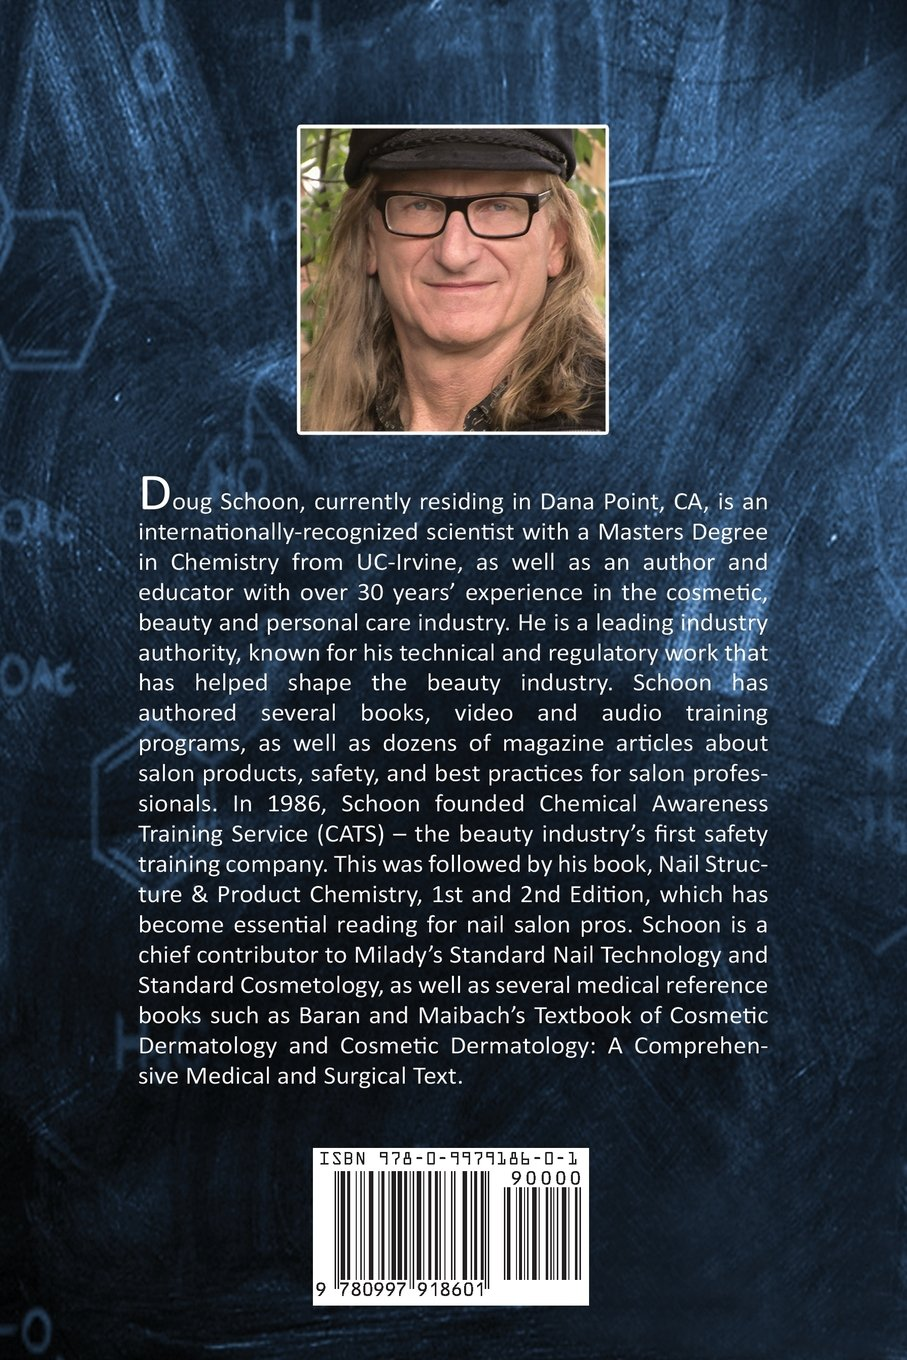 Face to face with doug schoon volume i science and facts about face to face with doug schoon volume i science and facts about nailsnail products for the educationally inclined doug schoon 9780997918601 amazon fandeluxe Images